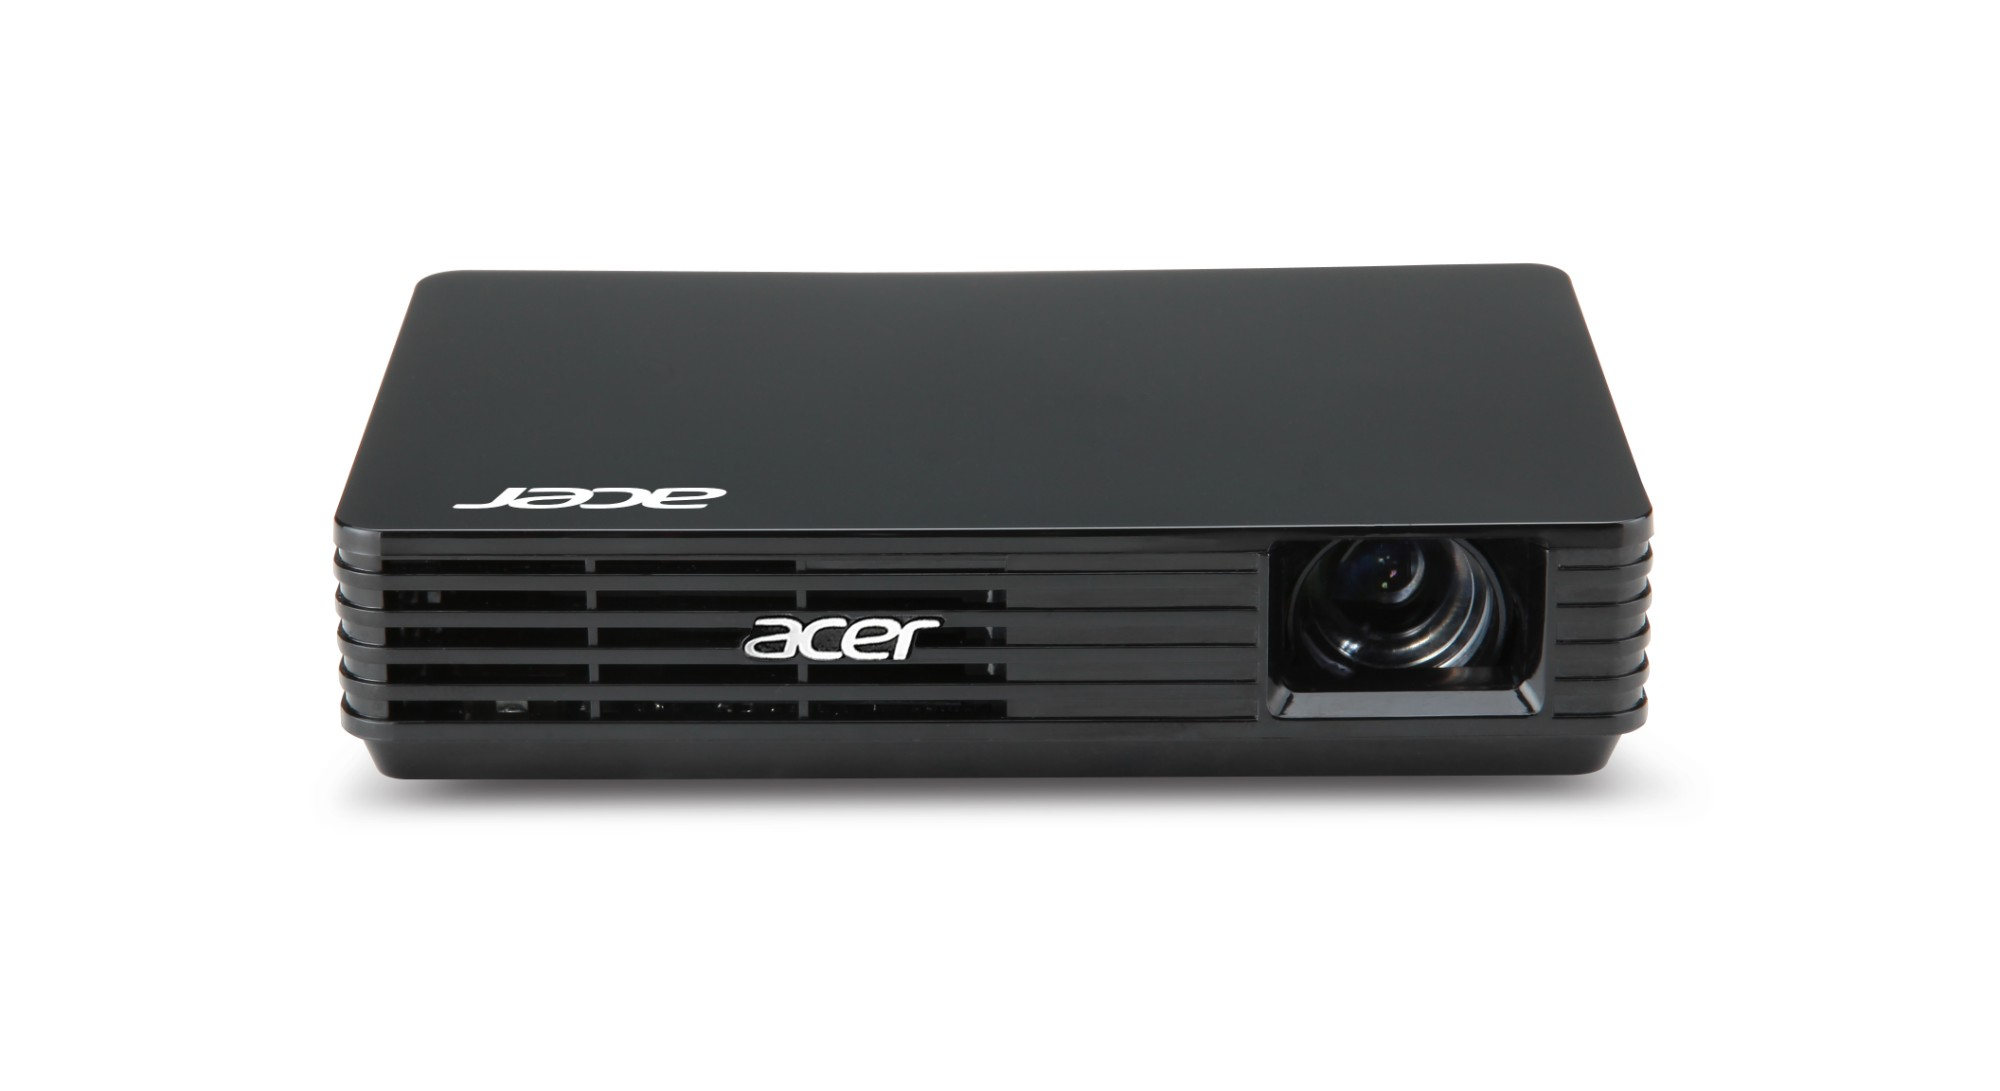 Acer C120 LED 100ANSI lumens DLP WVGA (854x480) Black data projector